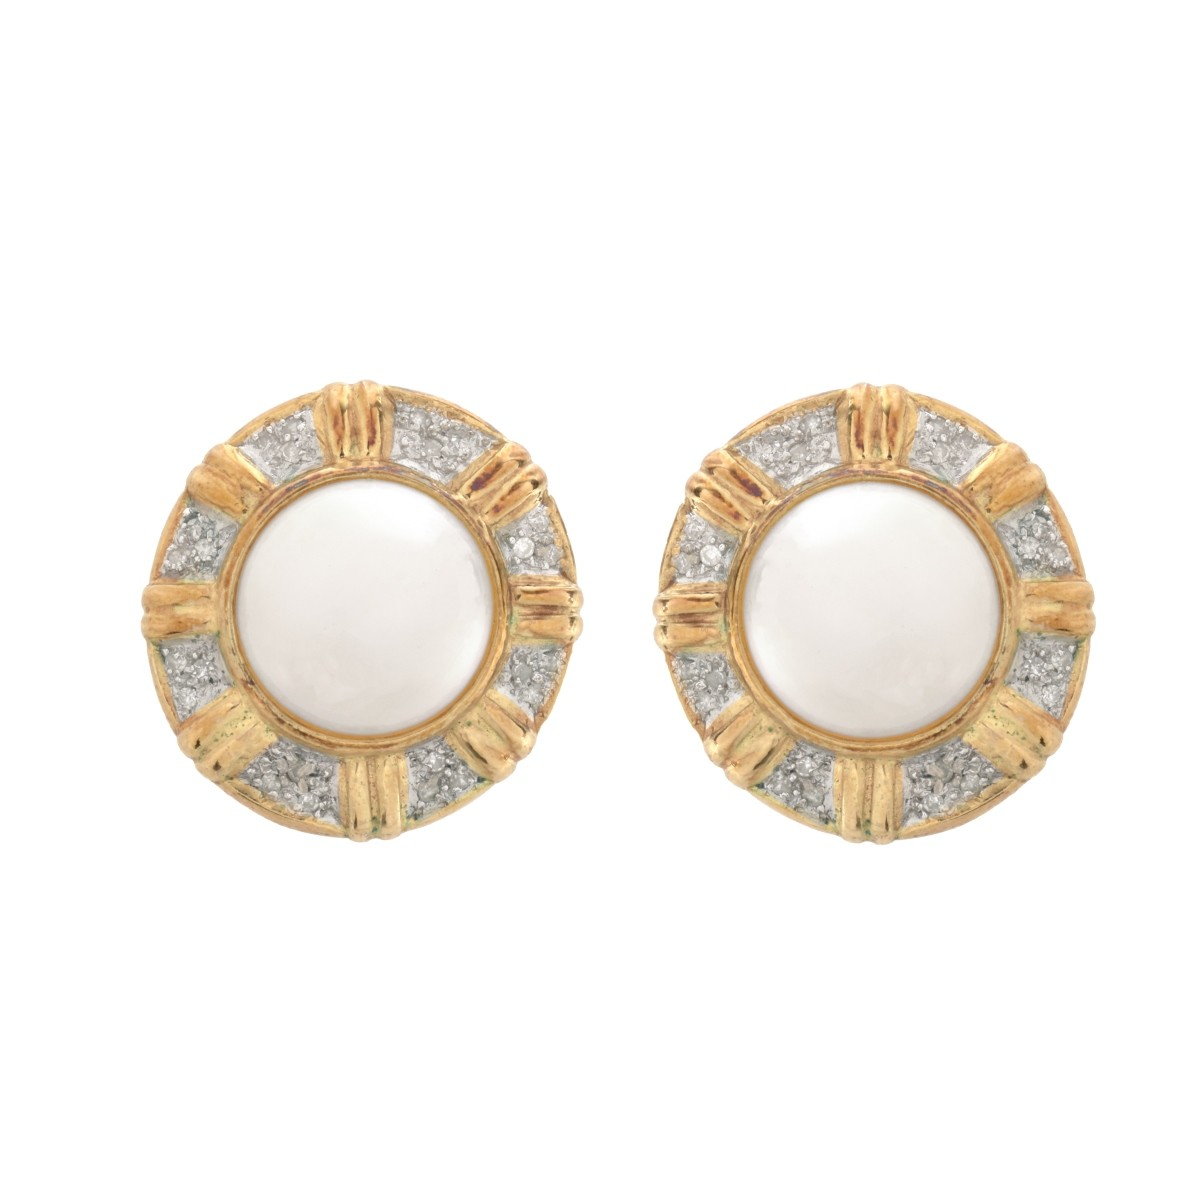 Mabe Pearl, Diamond and 14K Earrings